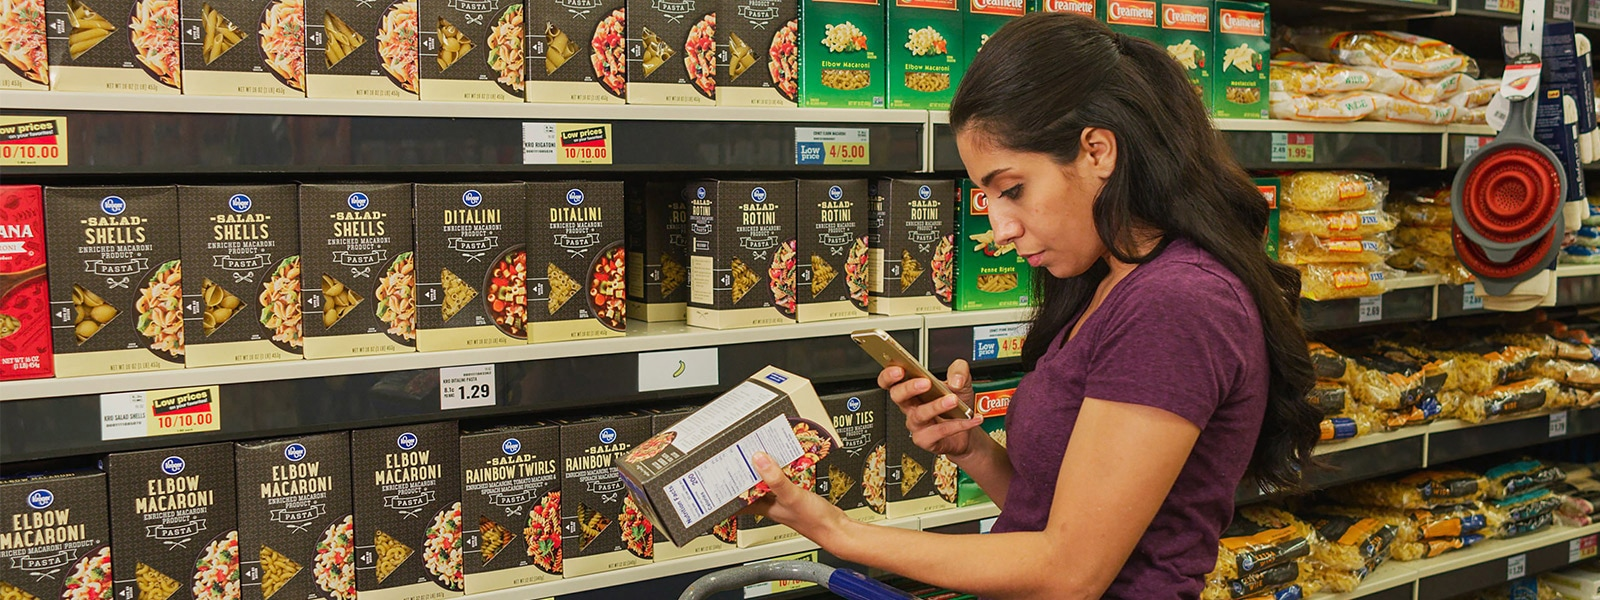 Woman using mobile device to scan grocery item